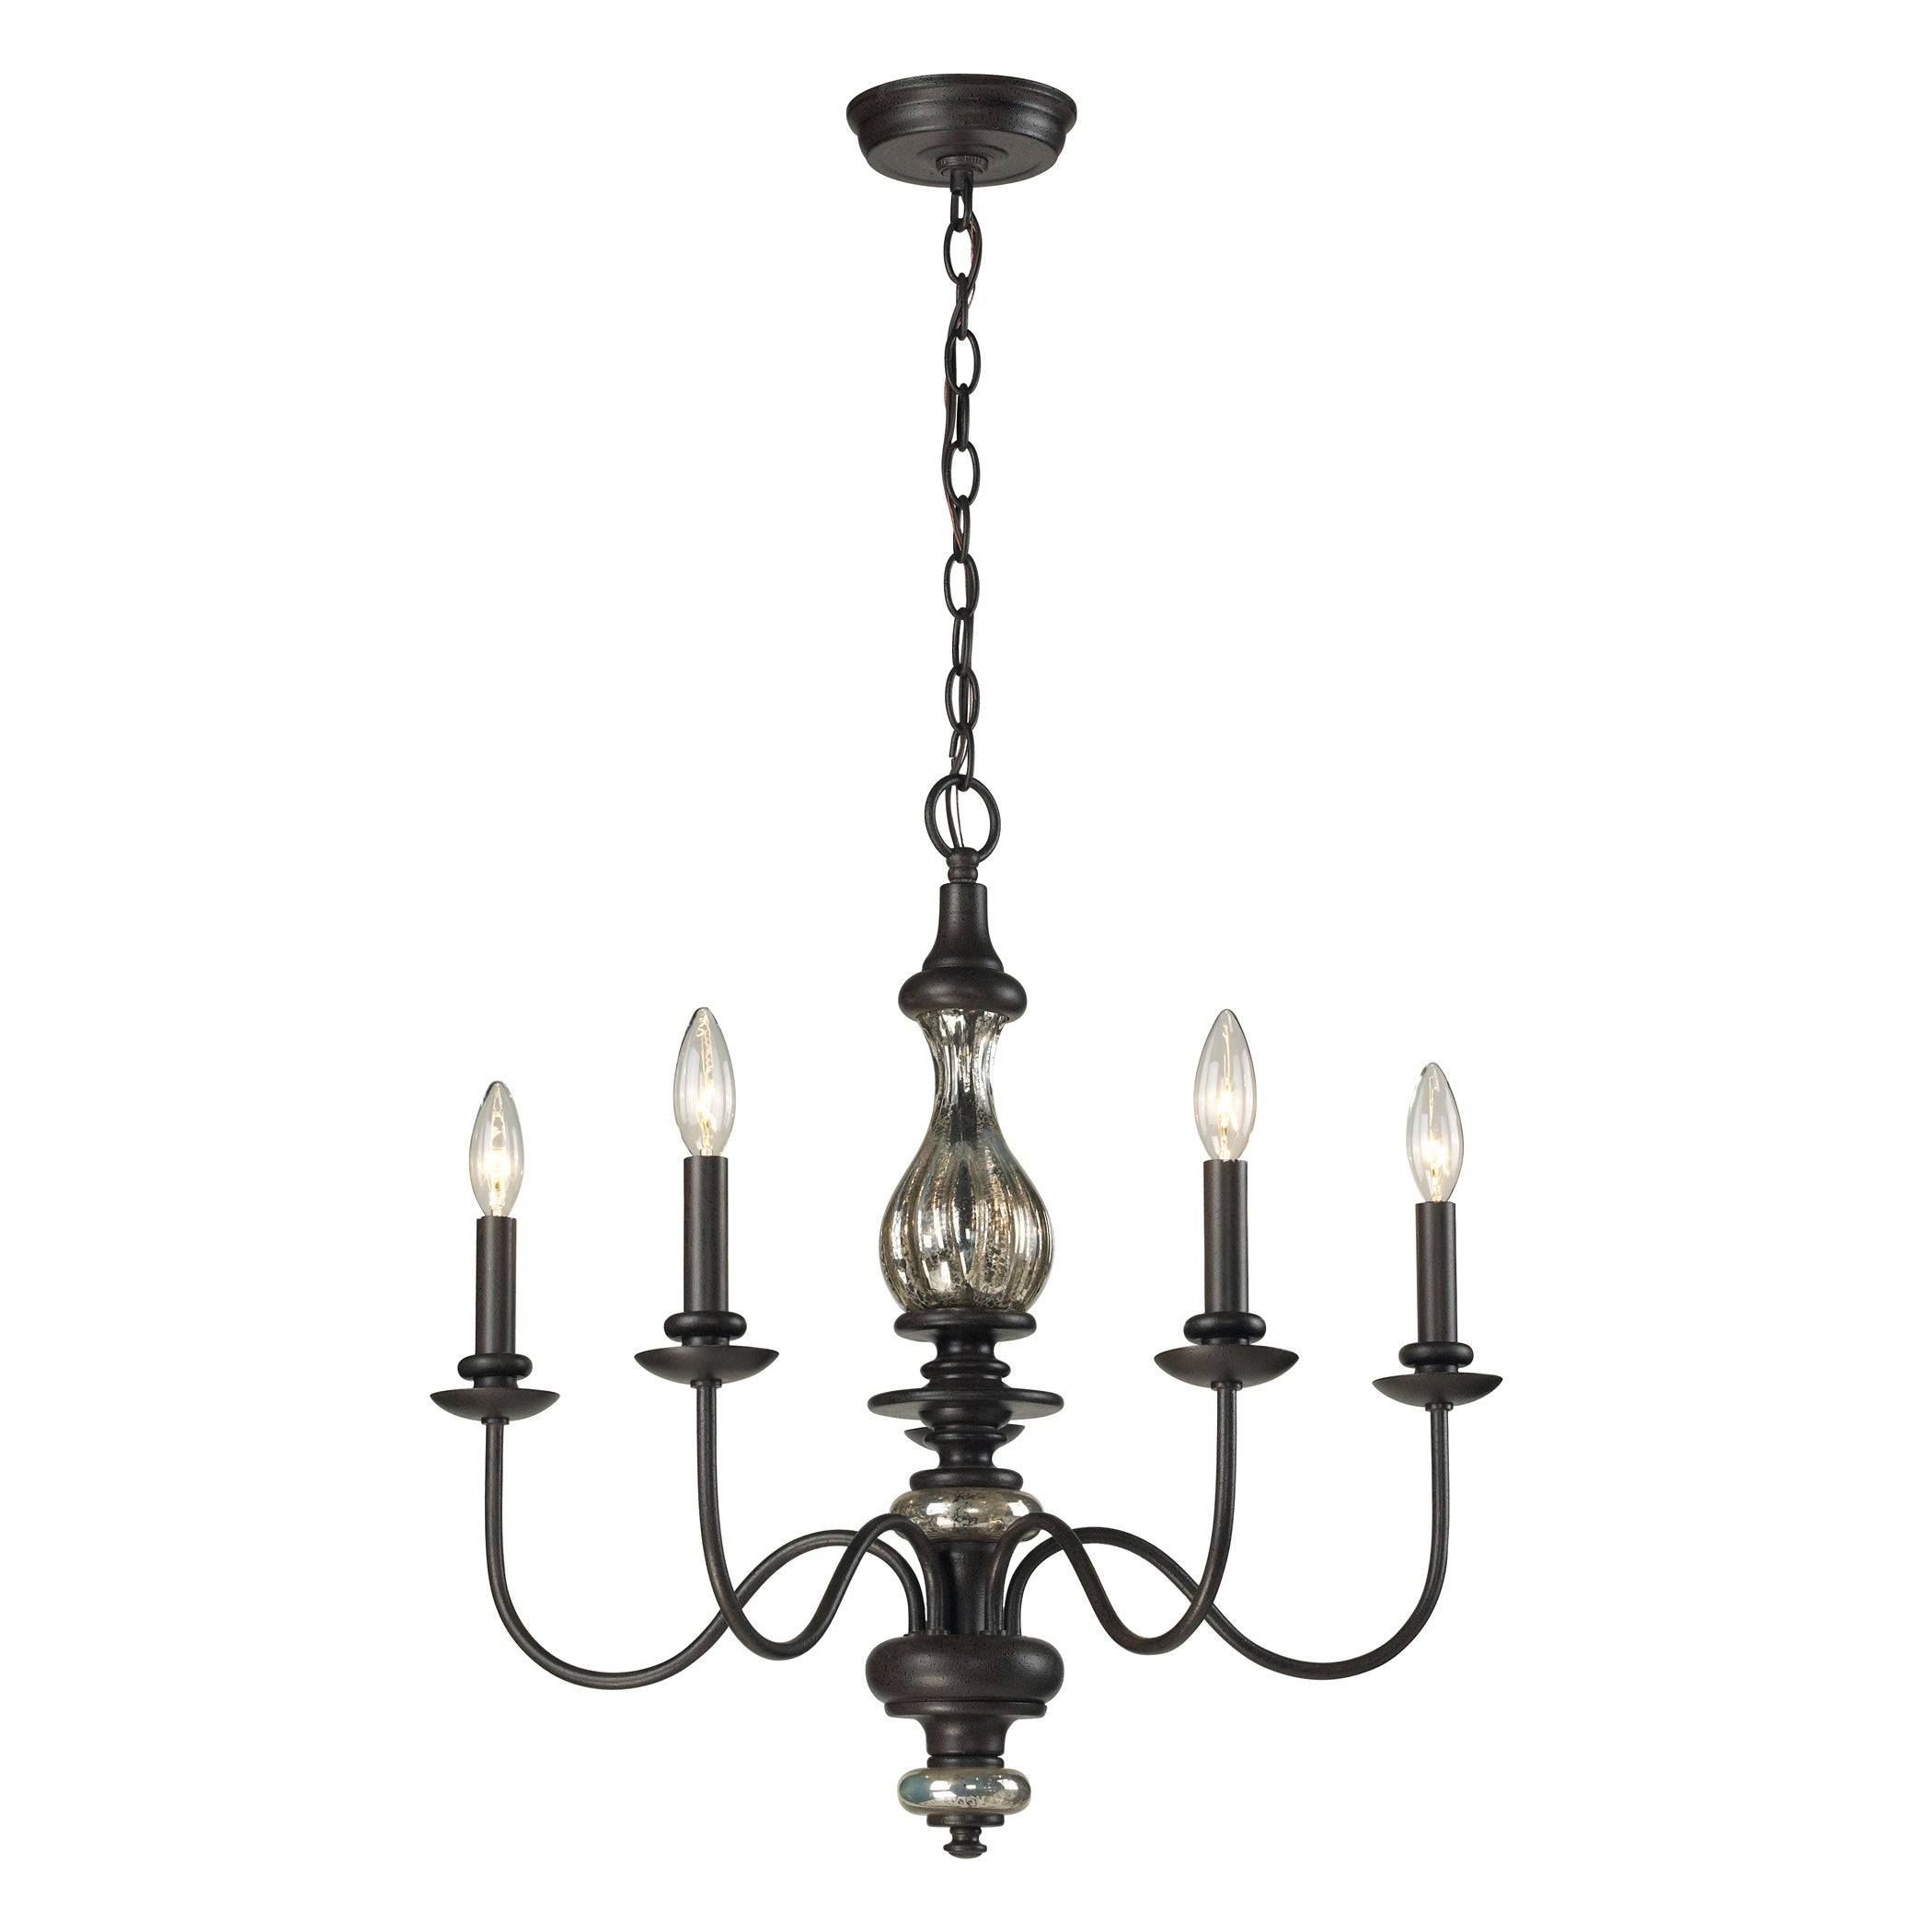 Elk Lighting Veronica 5 Light Vintage Chandelier Pertaining To Berger 5 Light Candle Style Chandeliers (Gallery 26 of 30)